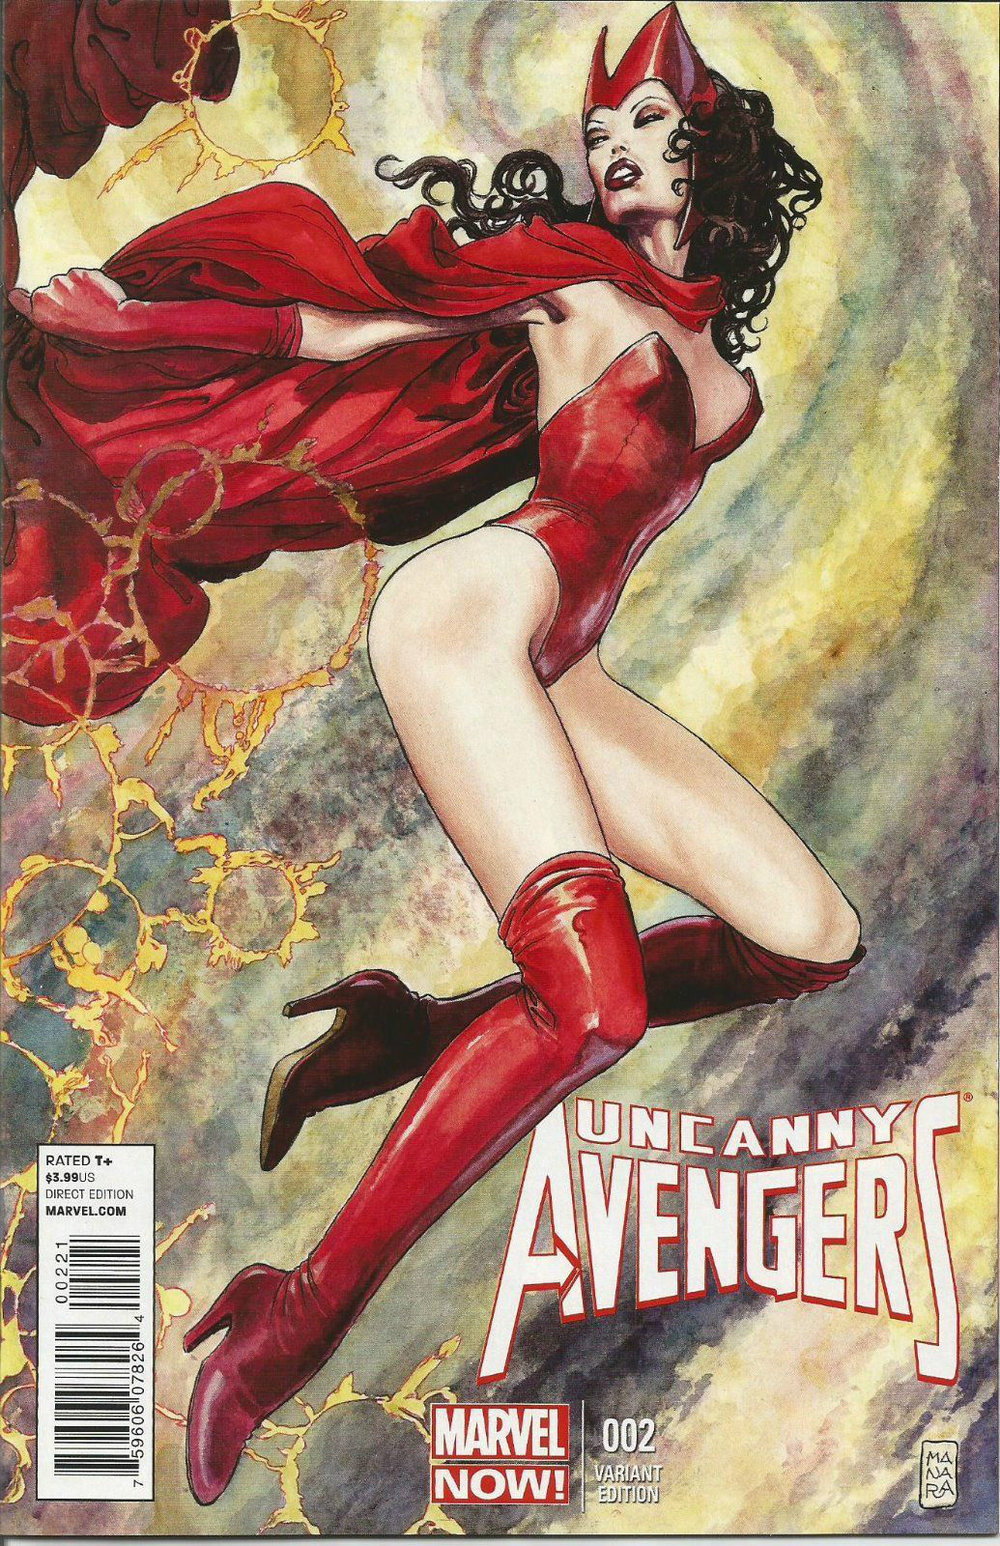 comix=_avengersmilo-manara-marvel-comic-covers_1951.JPG